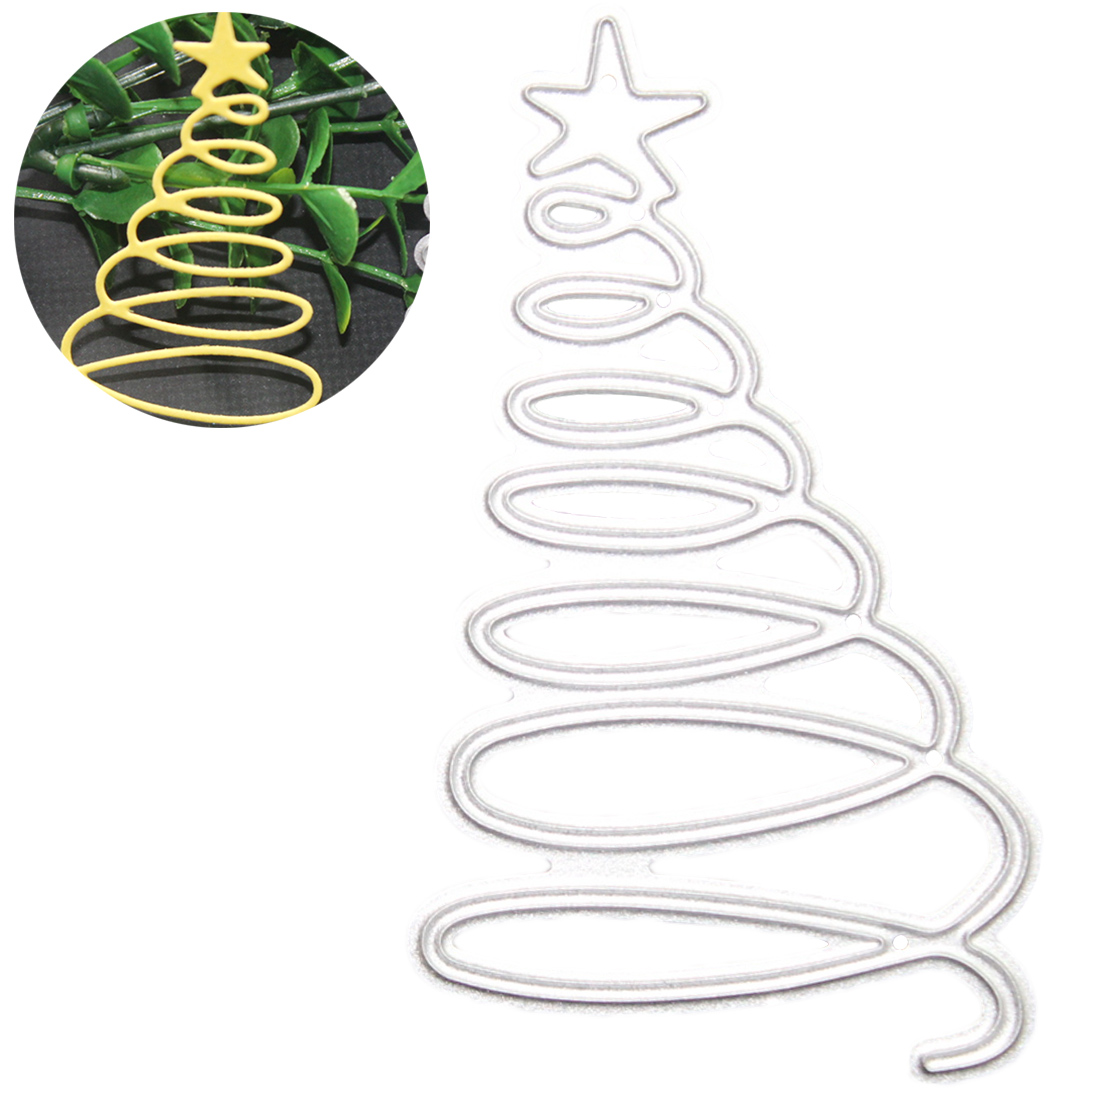 Christmas Tree Metal Cutting Dies Stencil Scrapbooking Embossing Greeting Card Craft For Home Christmas Party Decorations